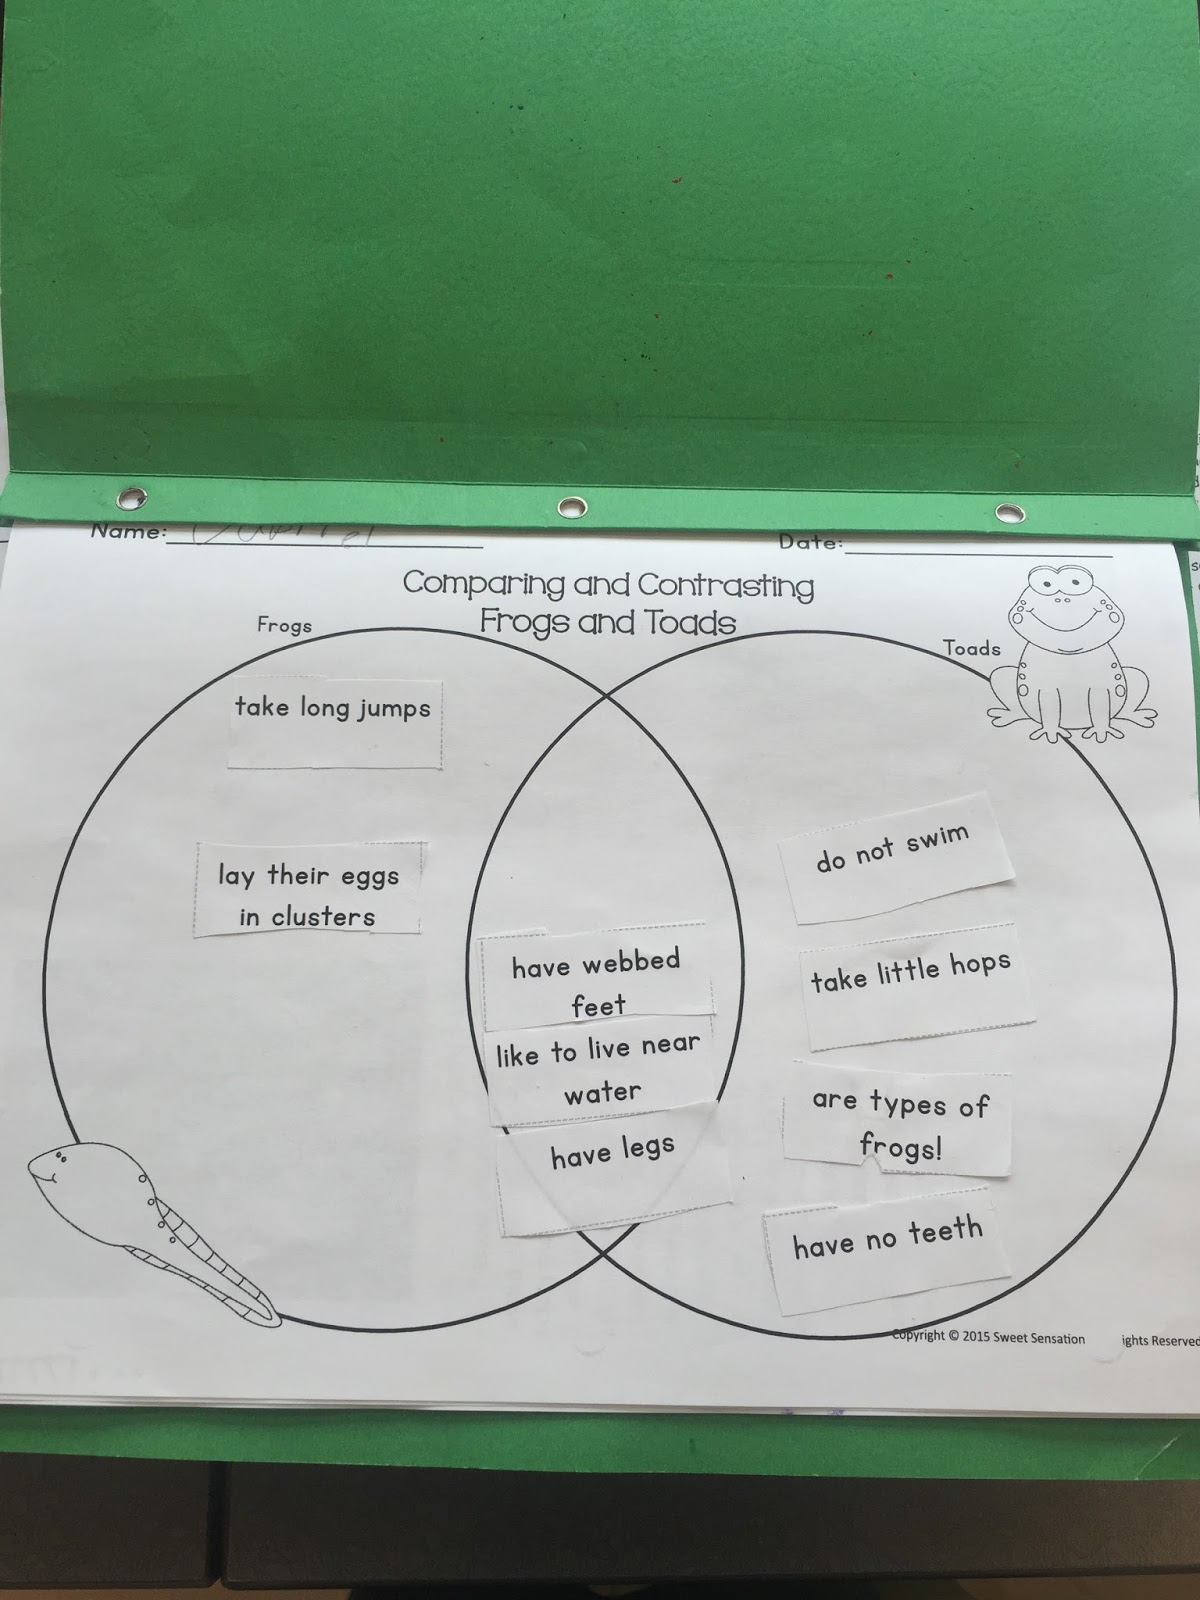 Miss vanchus classroom blog life cycle of a frog the next day we read a non fiction book on frogs and feature fish from our critter cafe helped us find the title table of contents index and glossary pooptronica Gallery